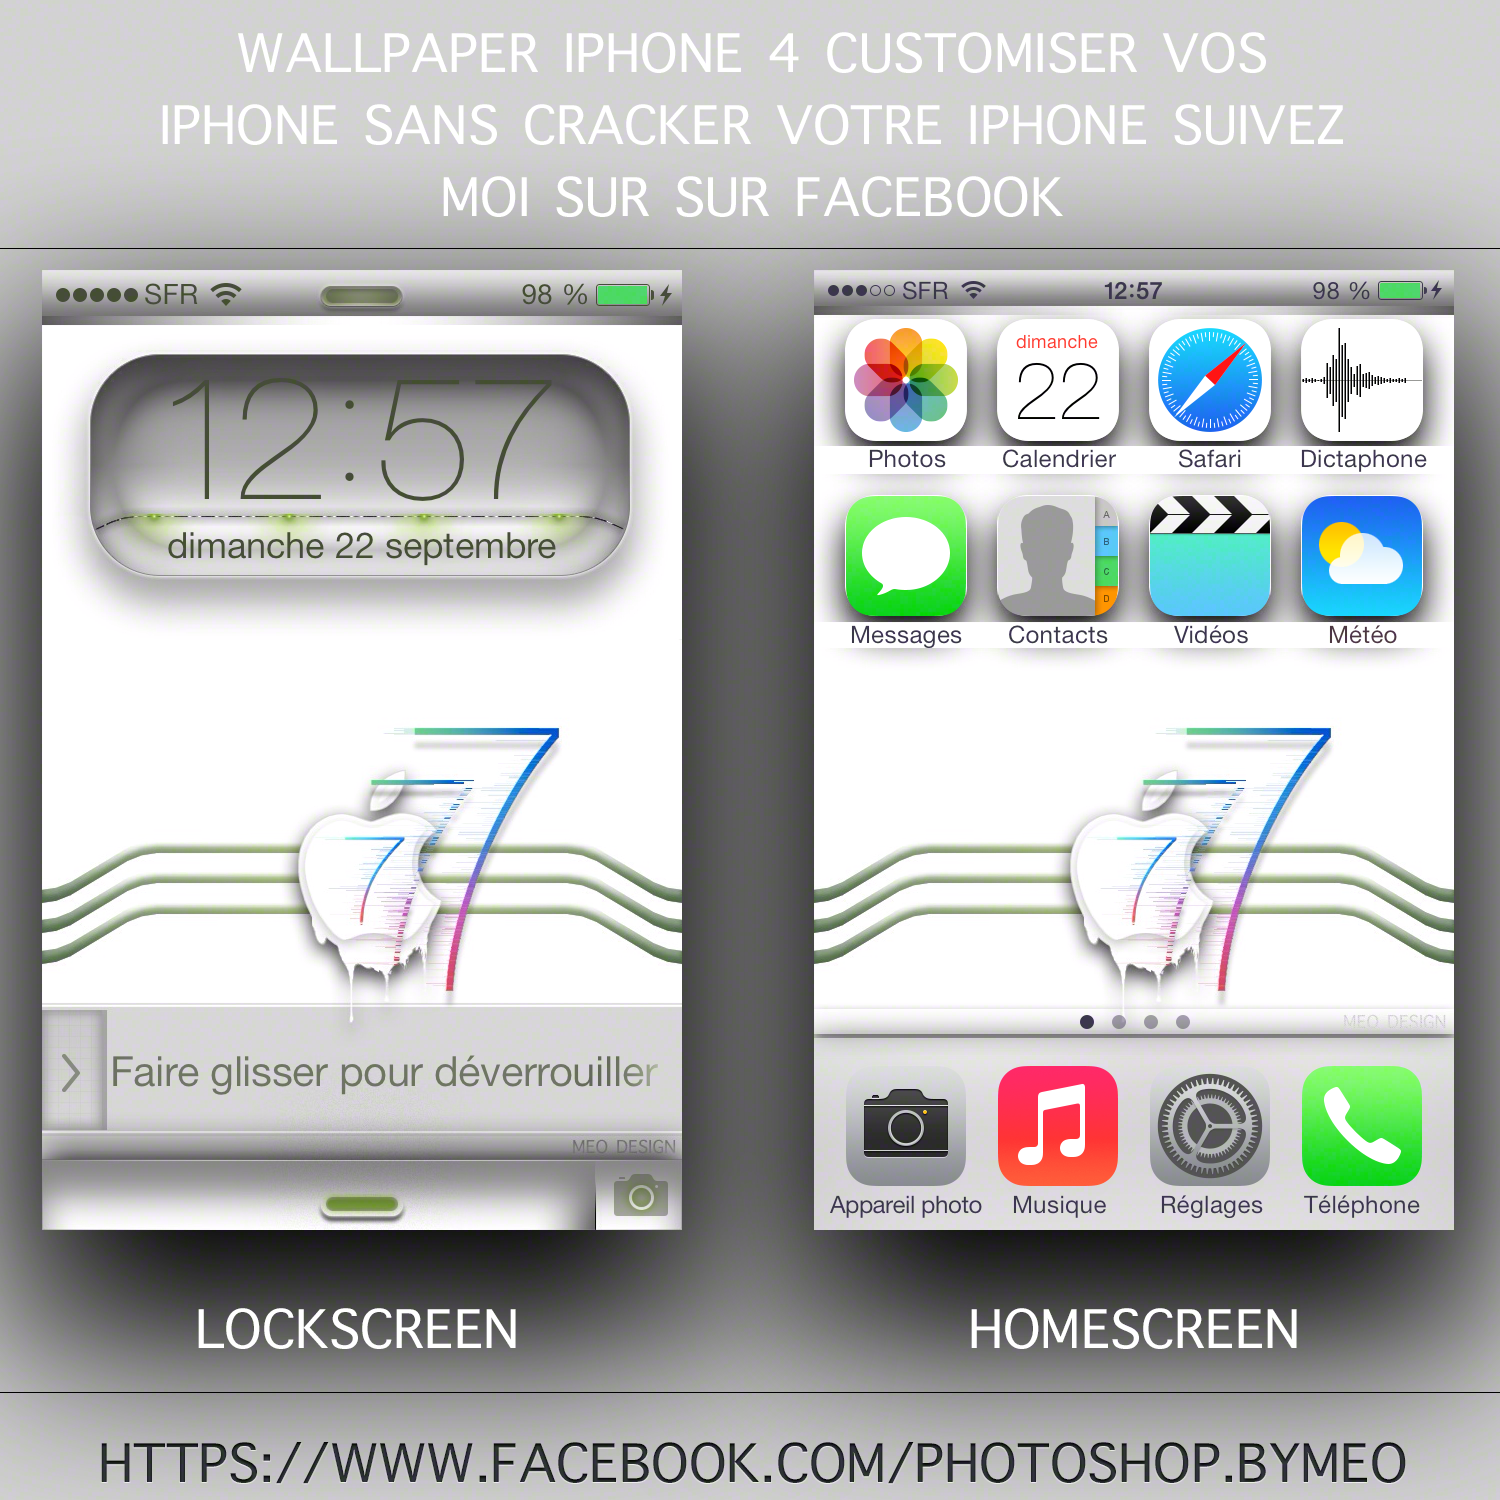 Wallpaper Iphone 4 Ios7 By Cooliographistyle On DeviantART